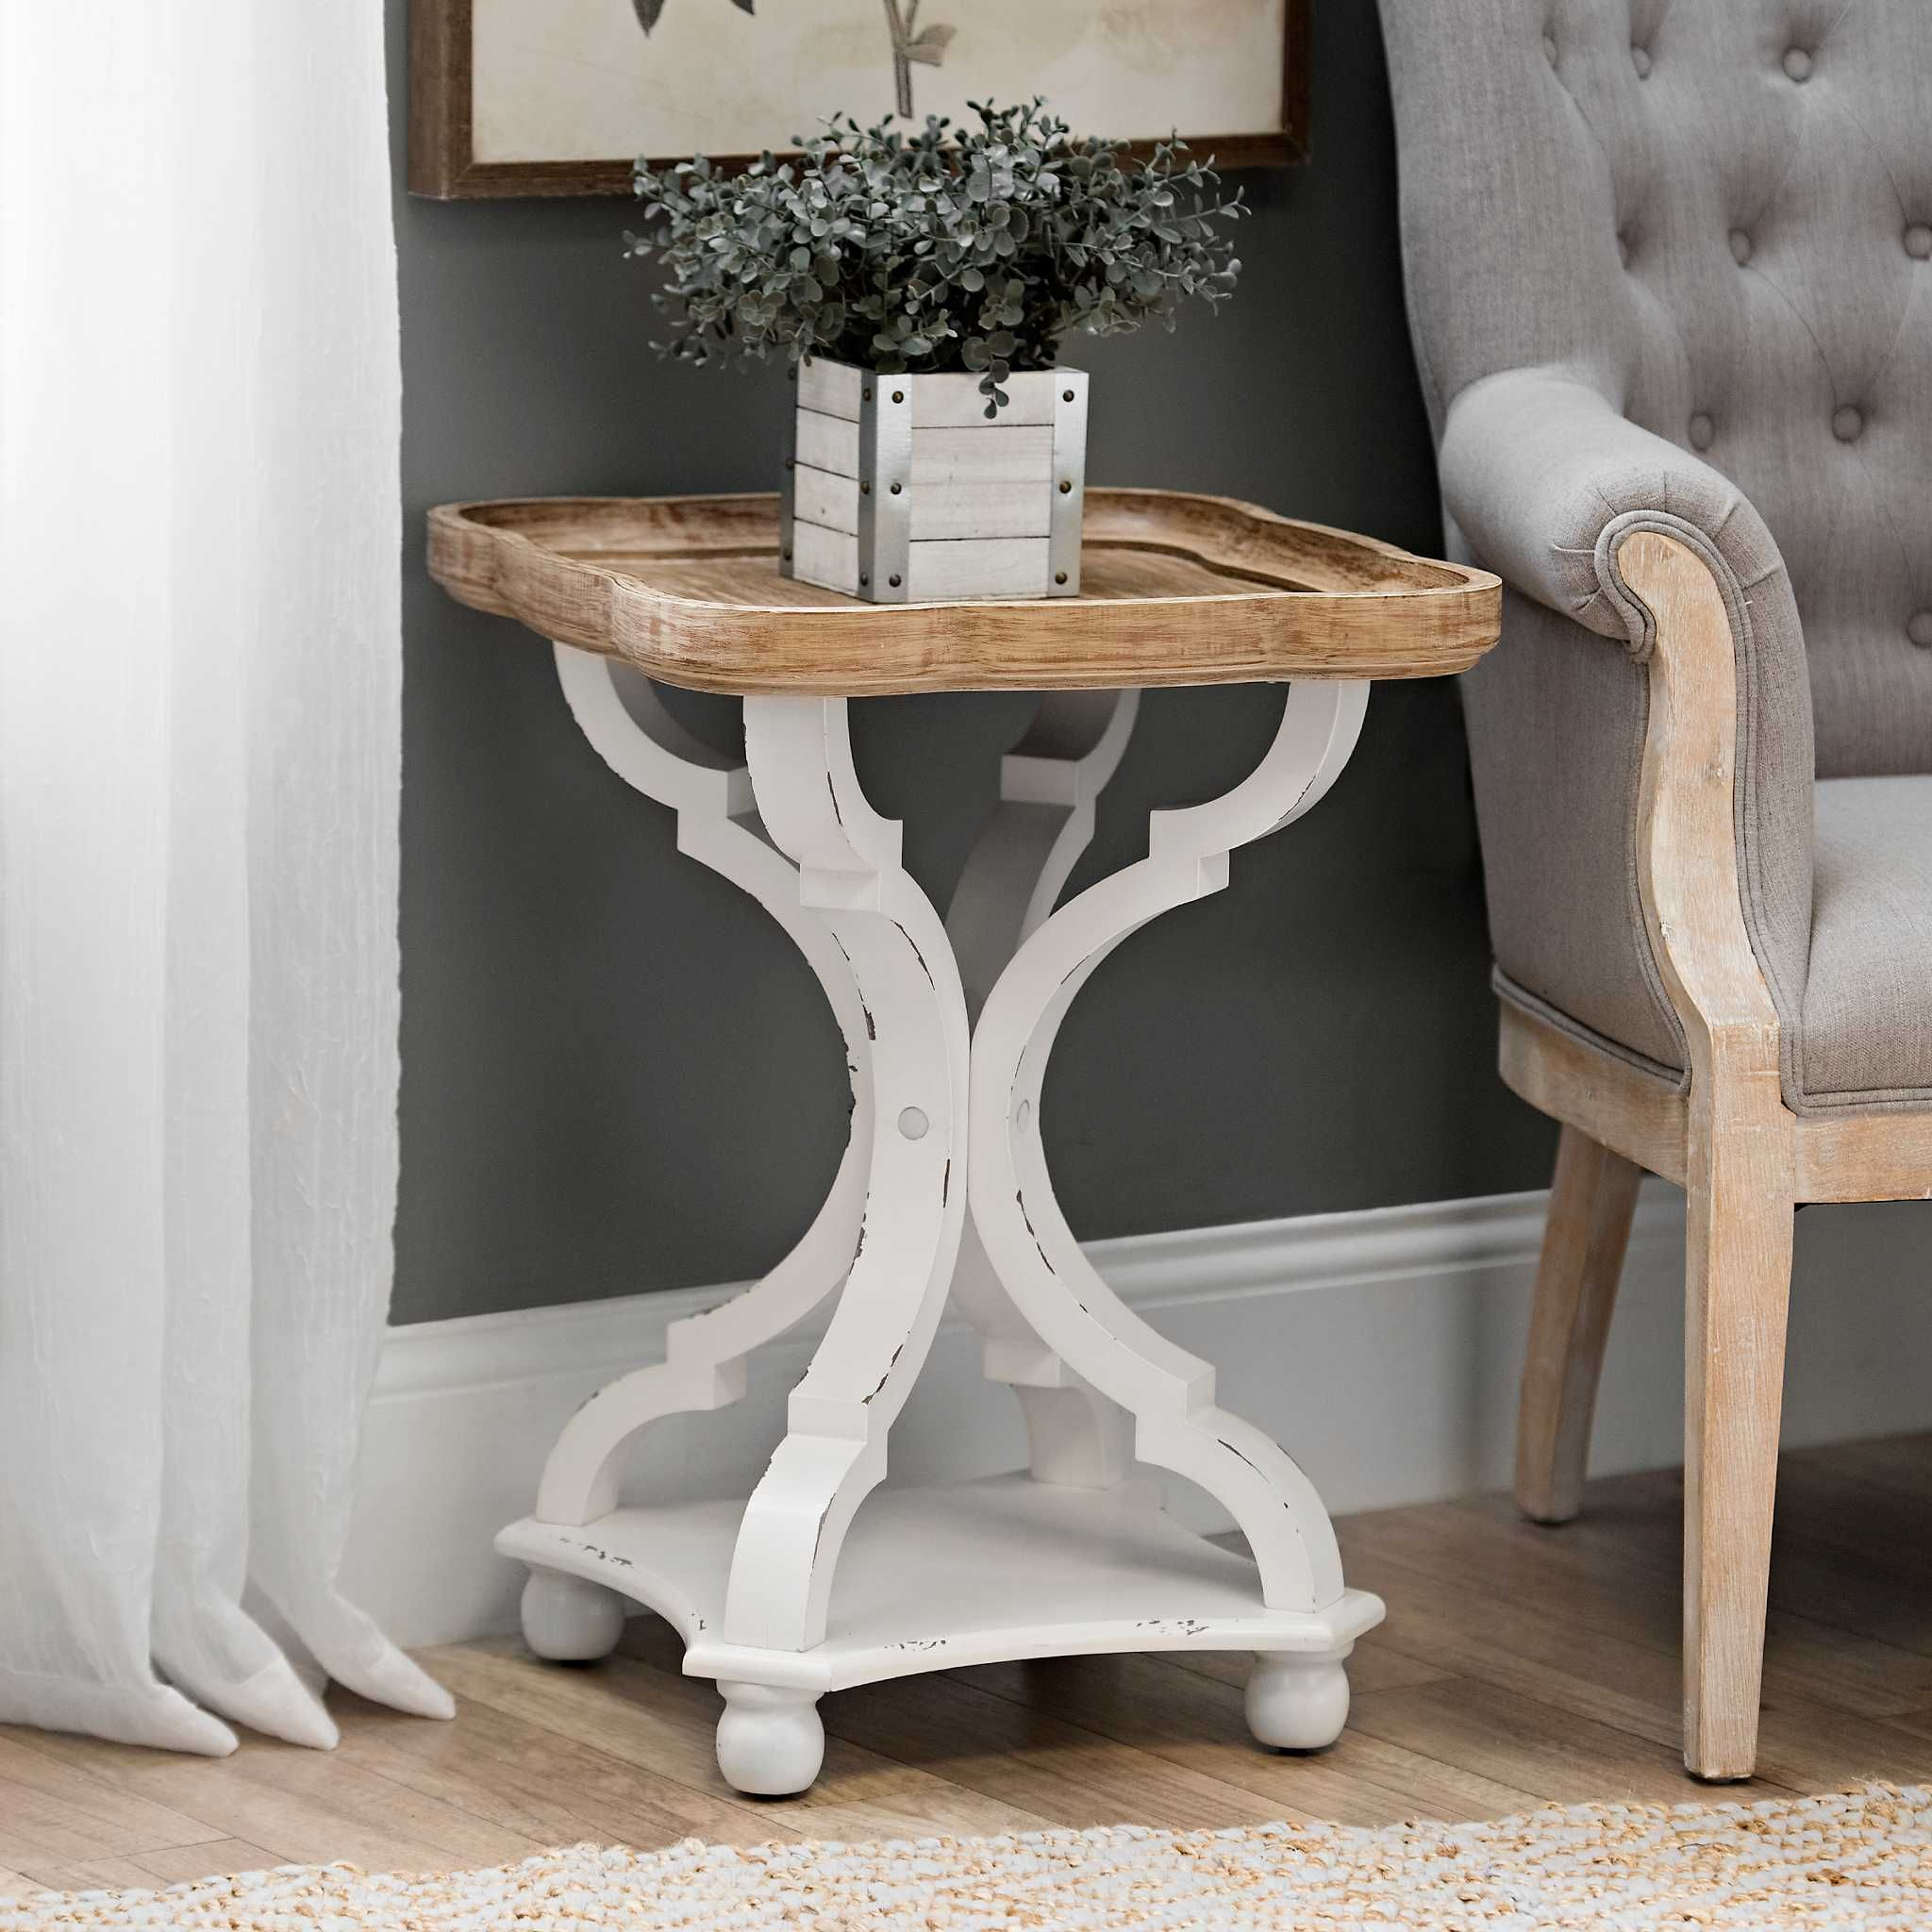 Product Details Corina Scalloped Accent Table in 2019 | {Home ...